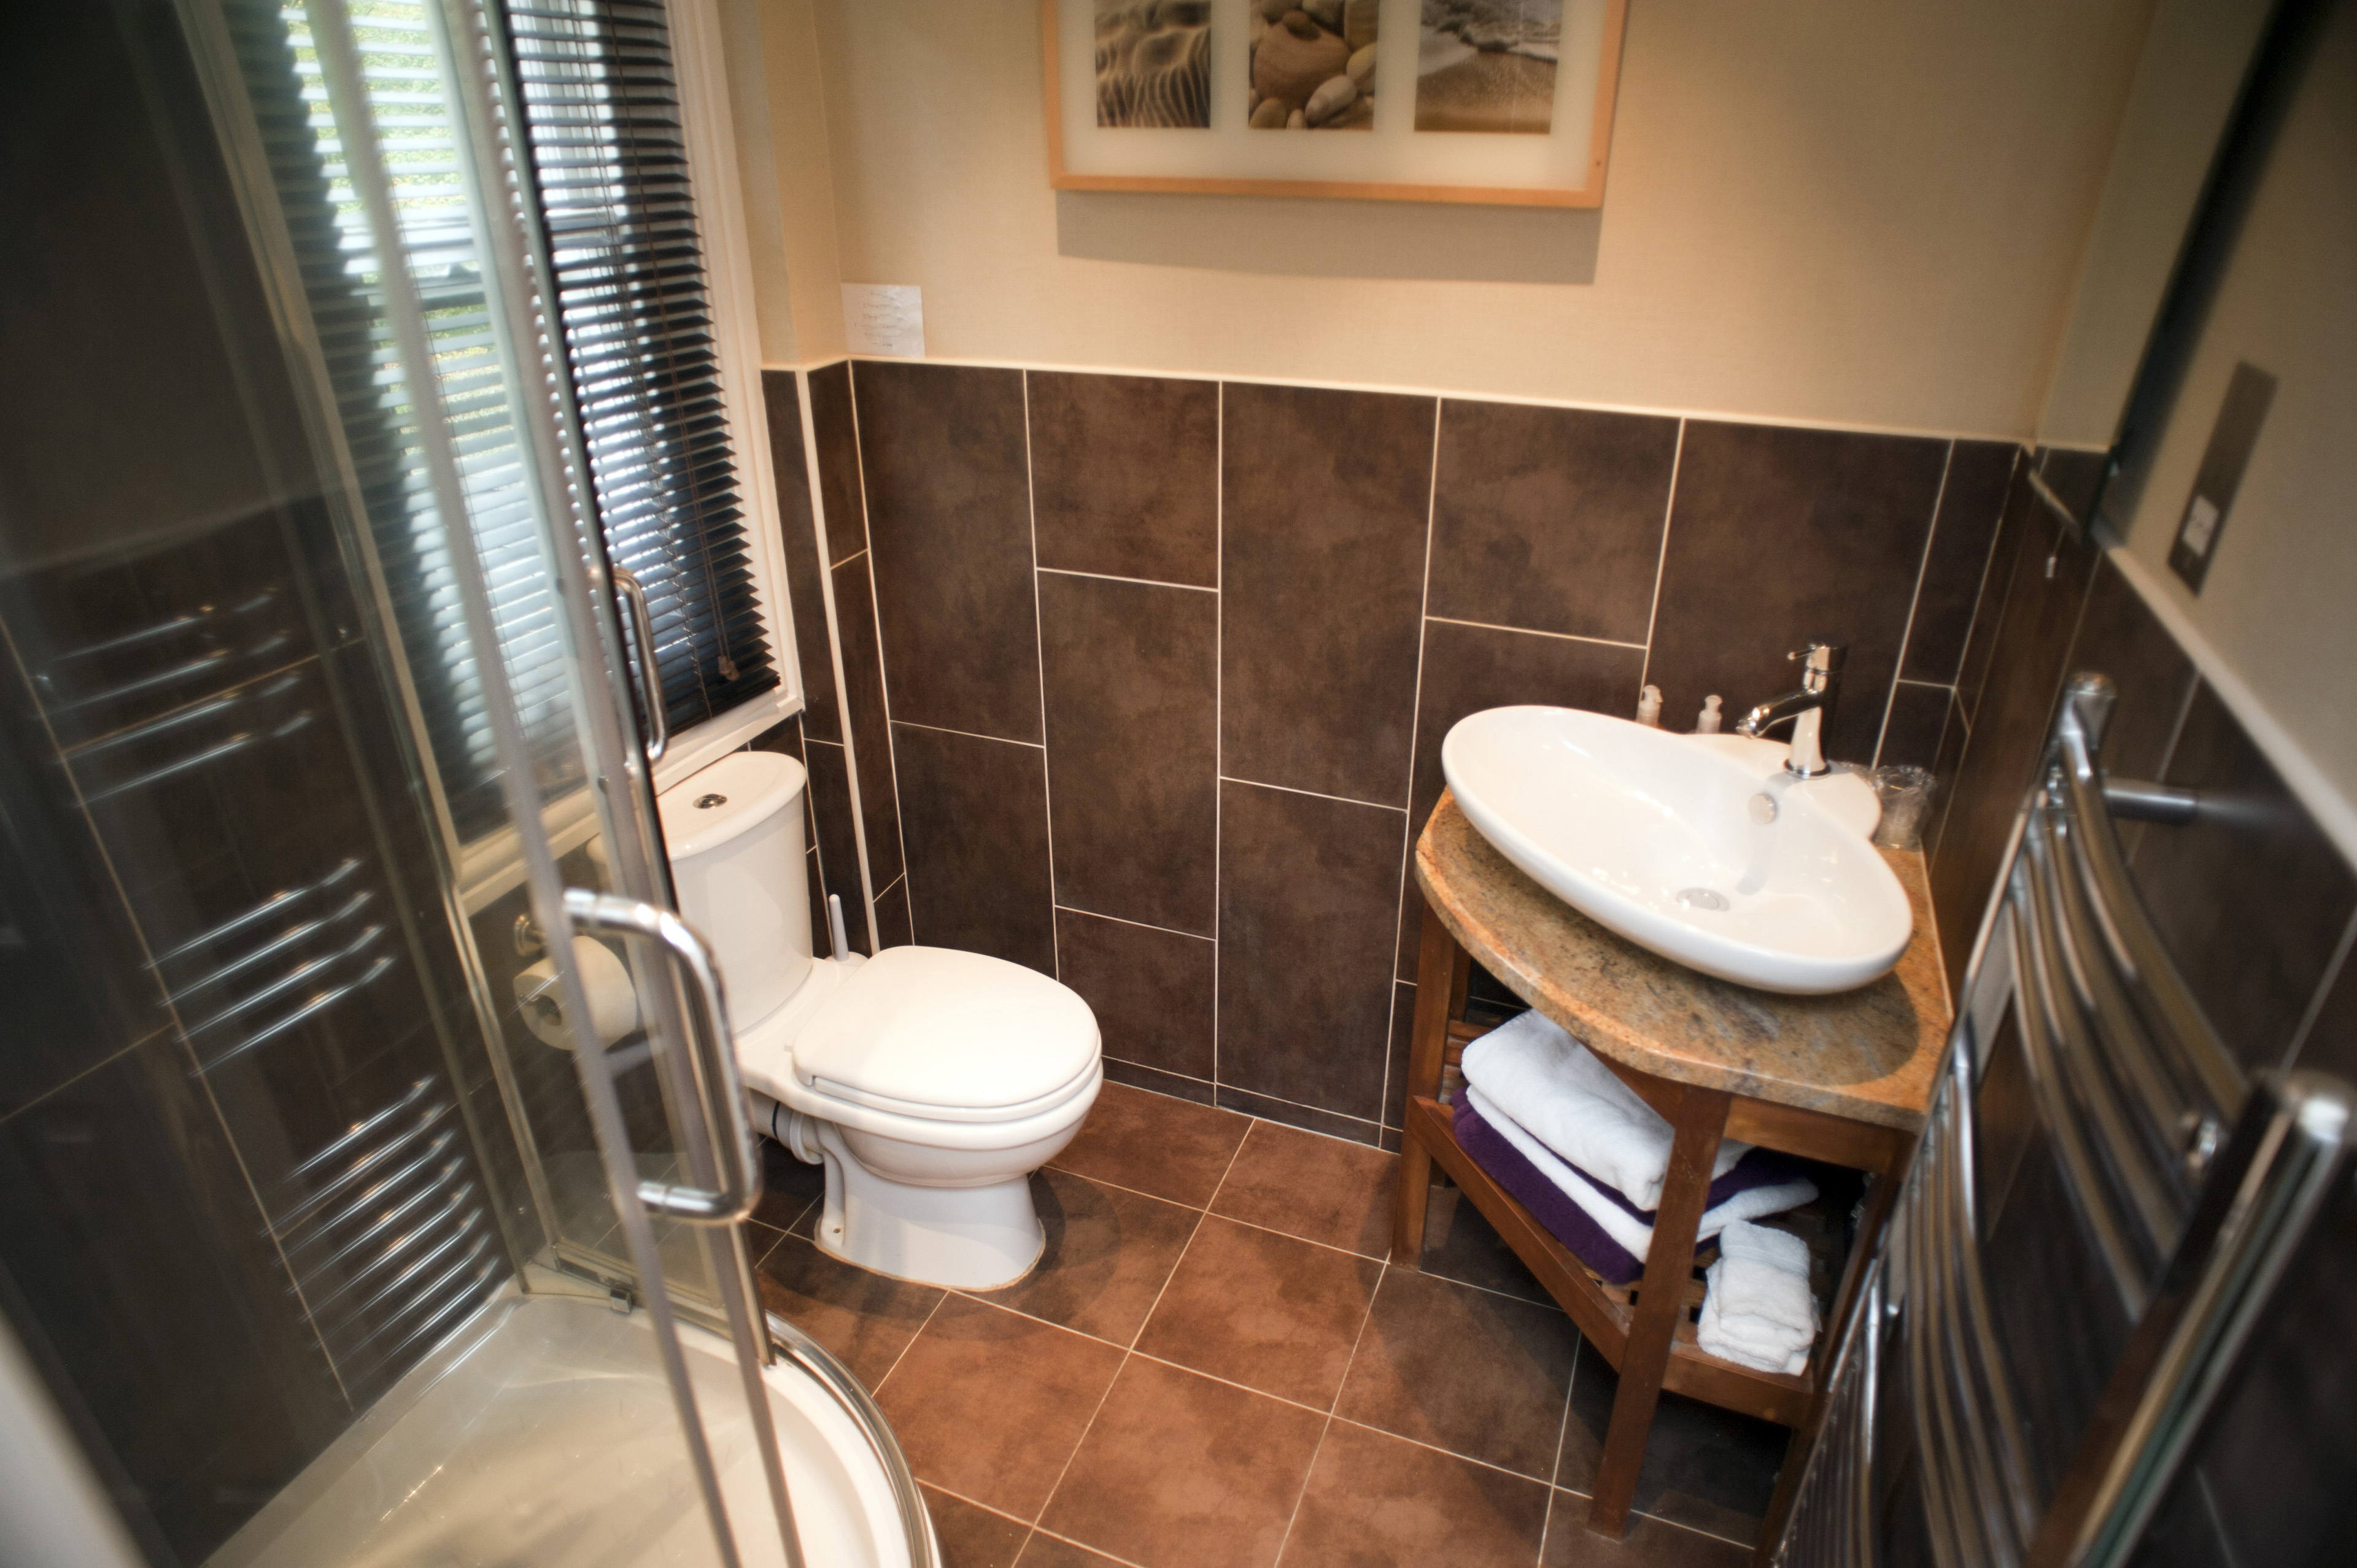 Image of Ensuite bathroom interior  FreebiePhotography